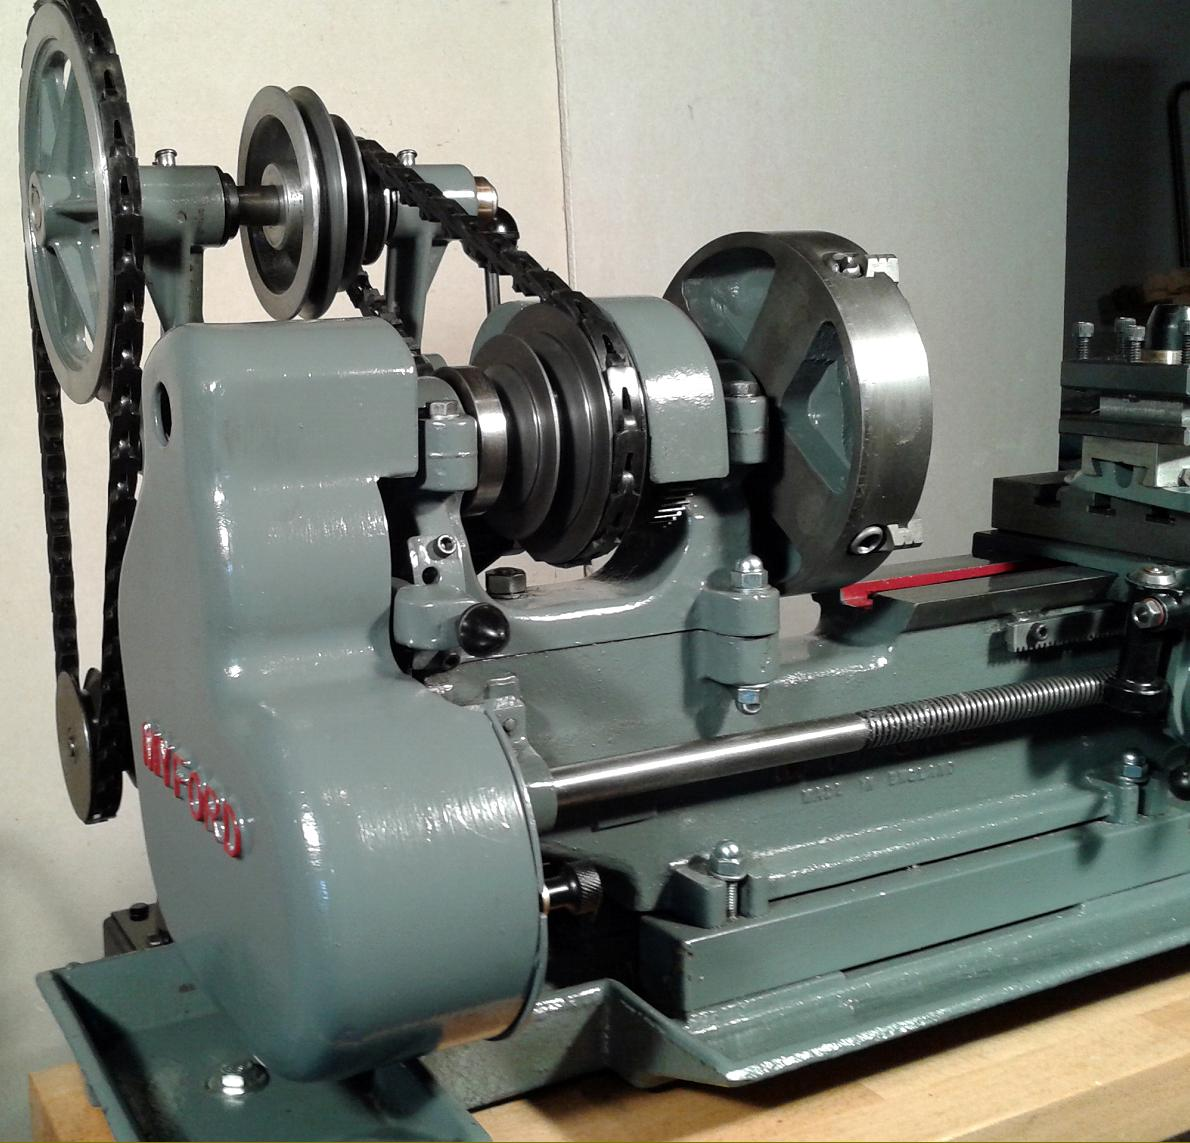 Myford ML2 Lathe rebuilt with ML7 components